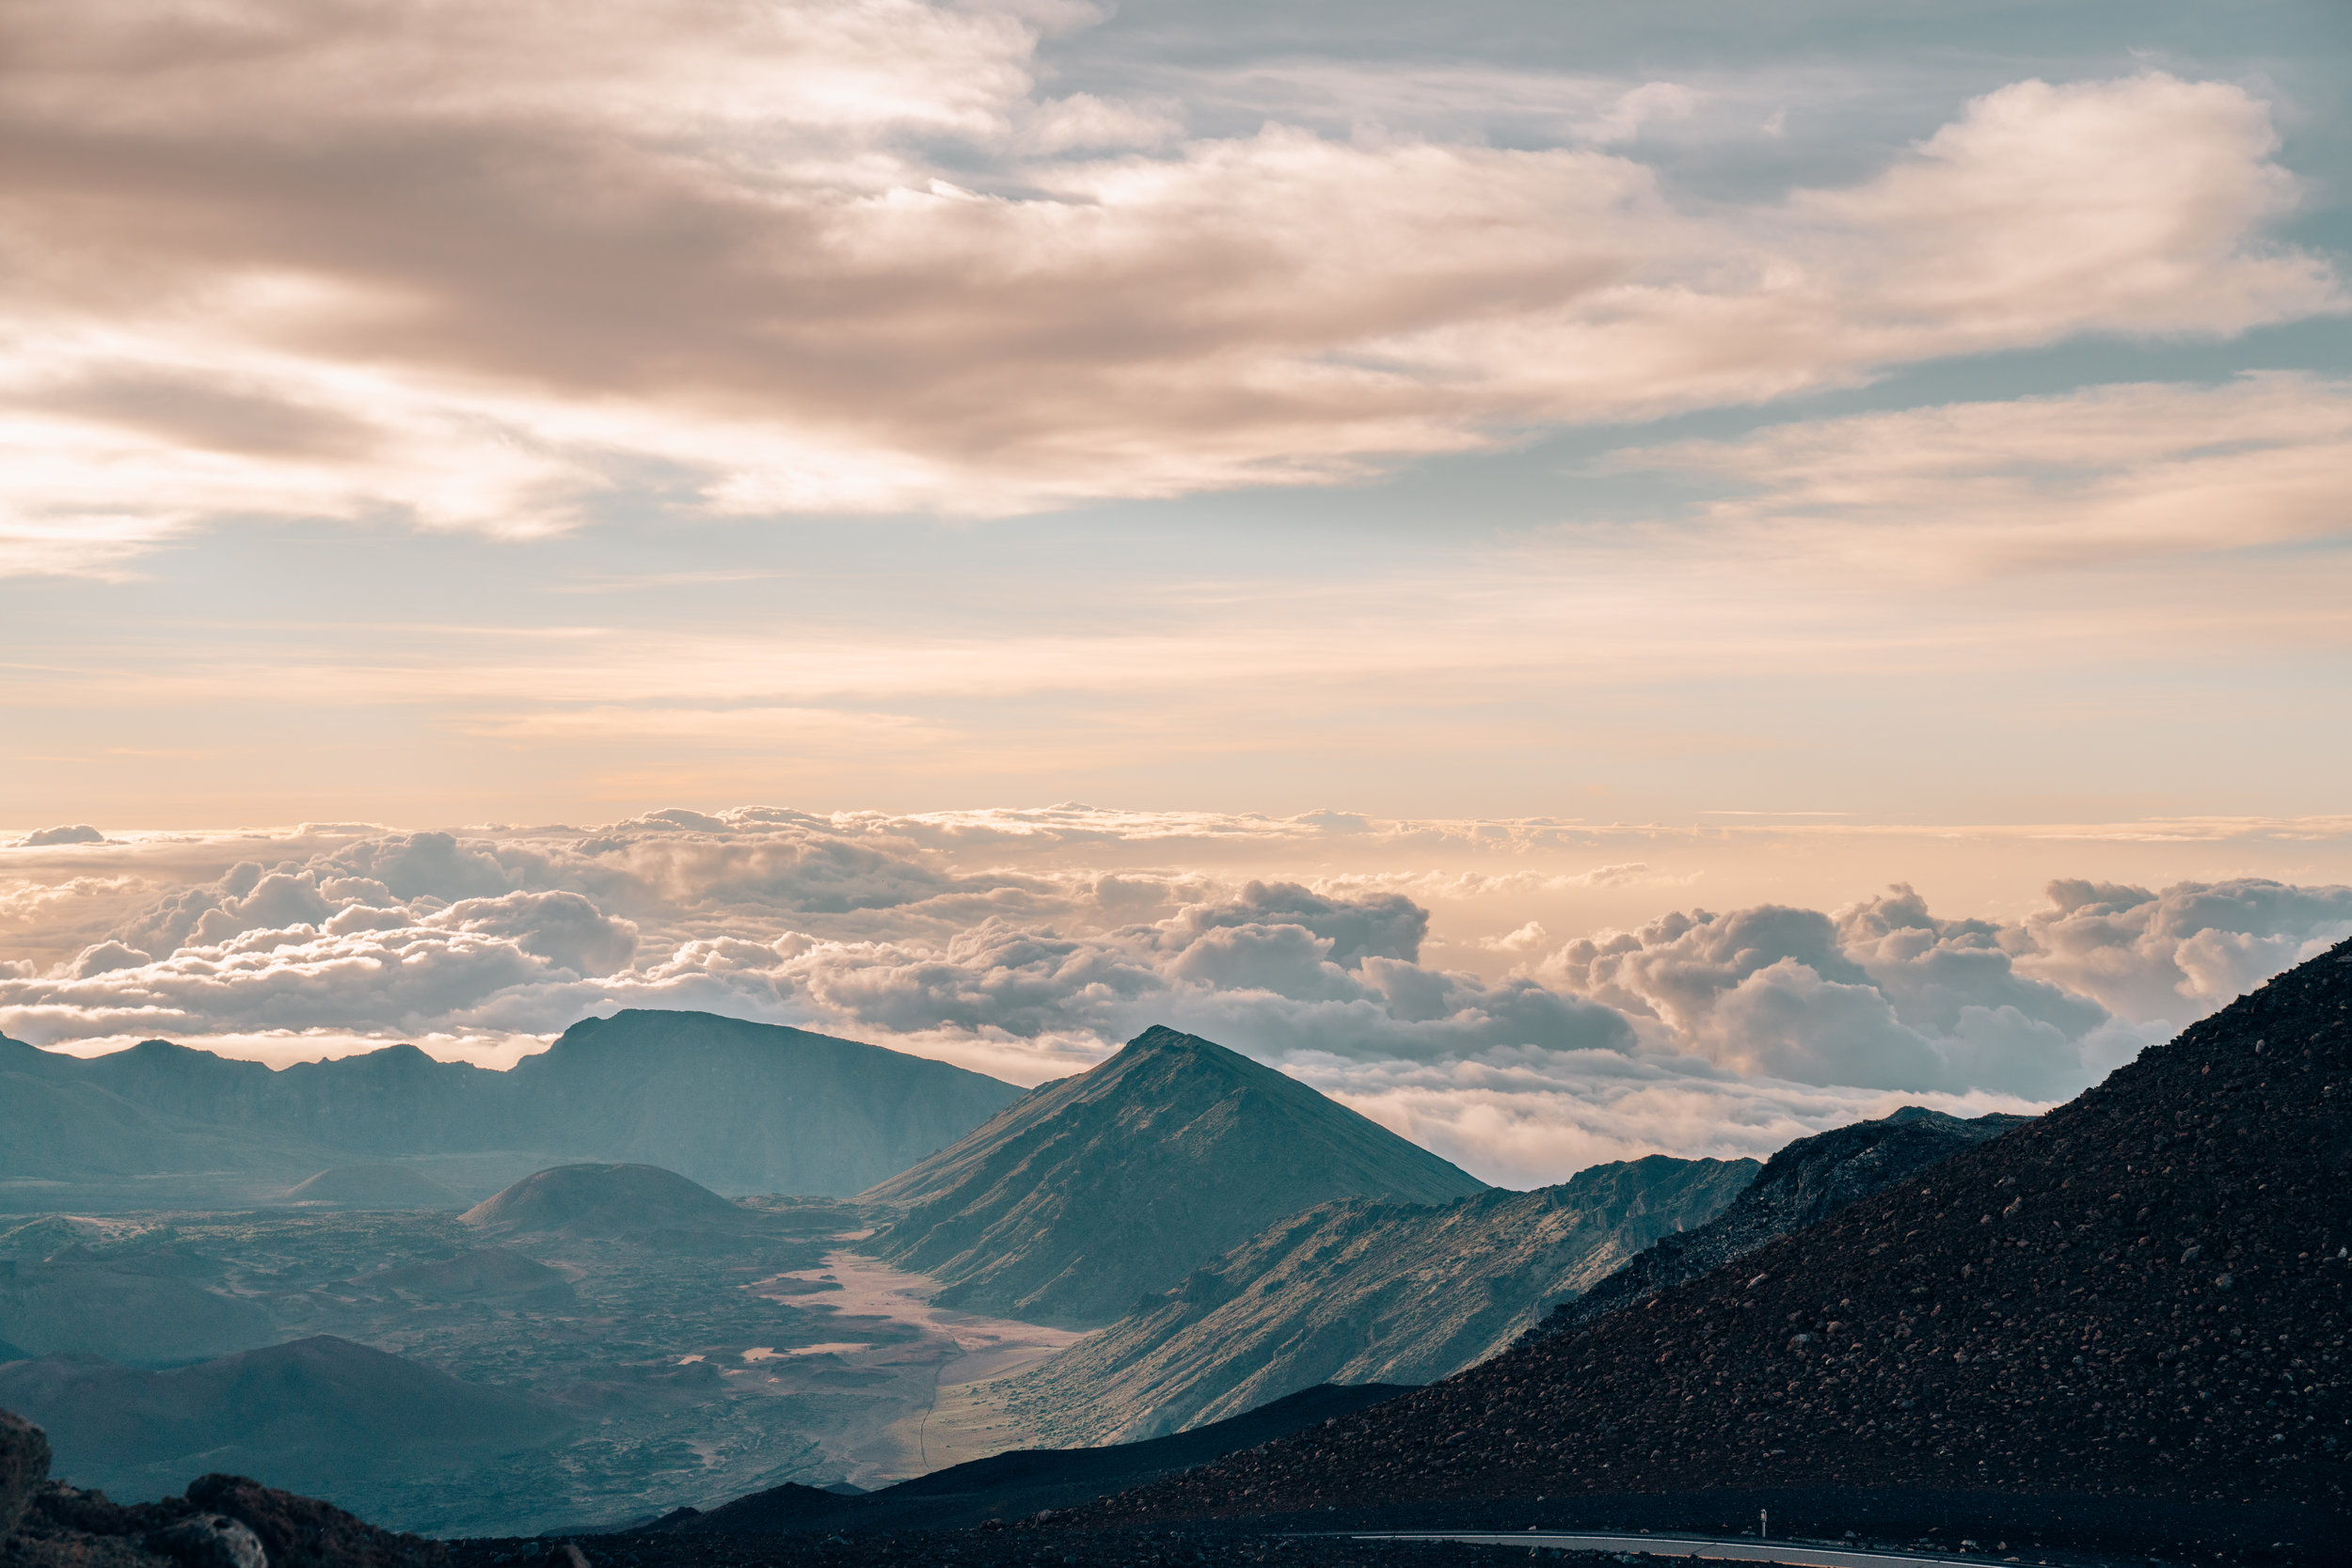 Sunrise from the Clouds at Mt Haleakala